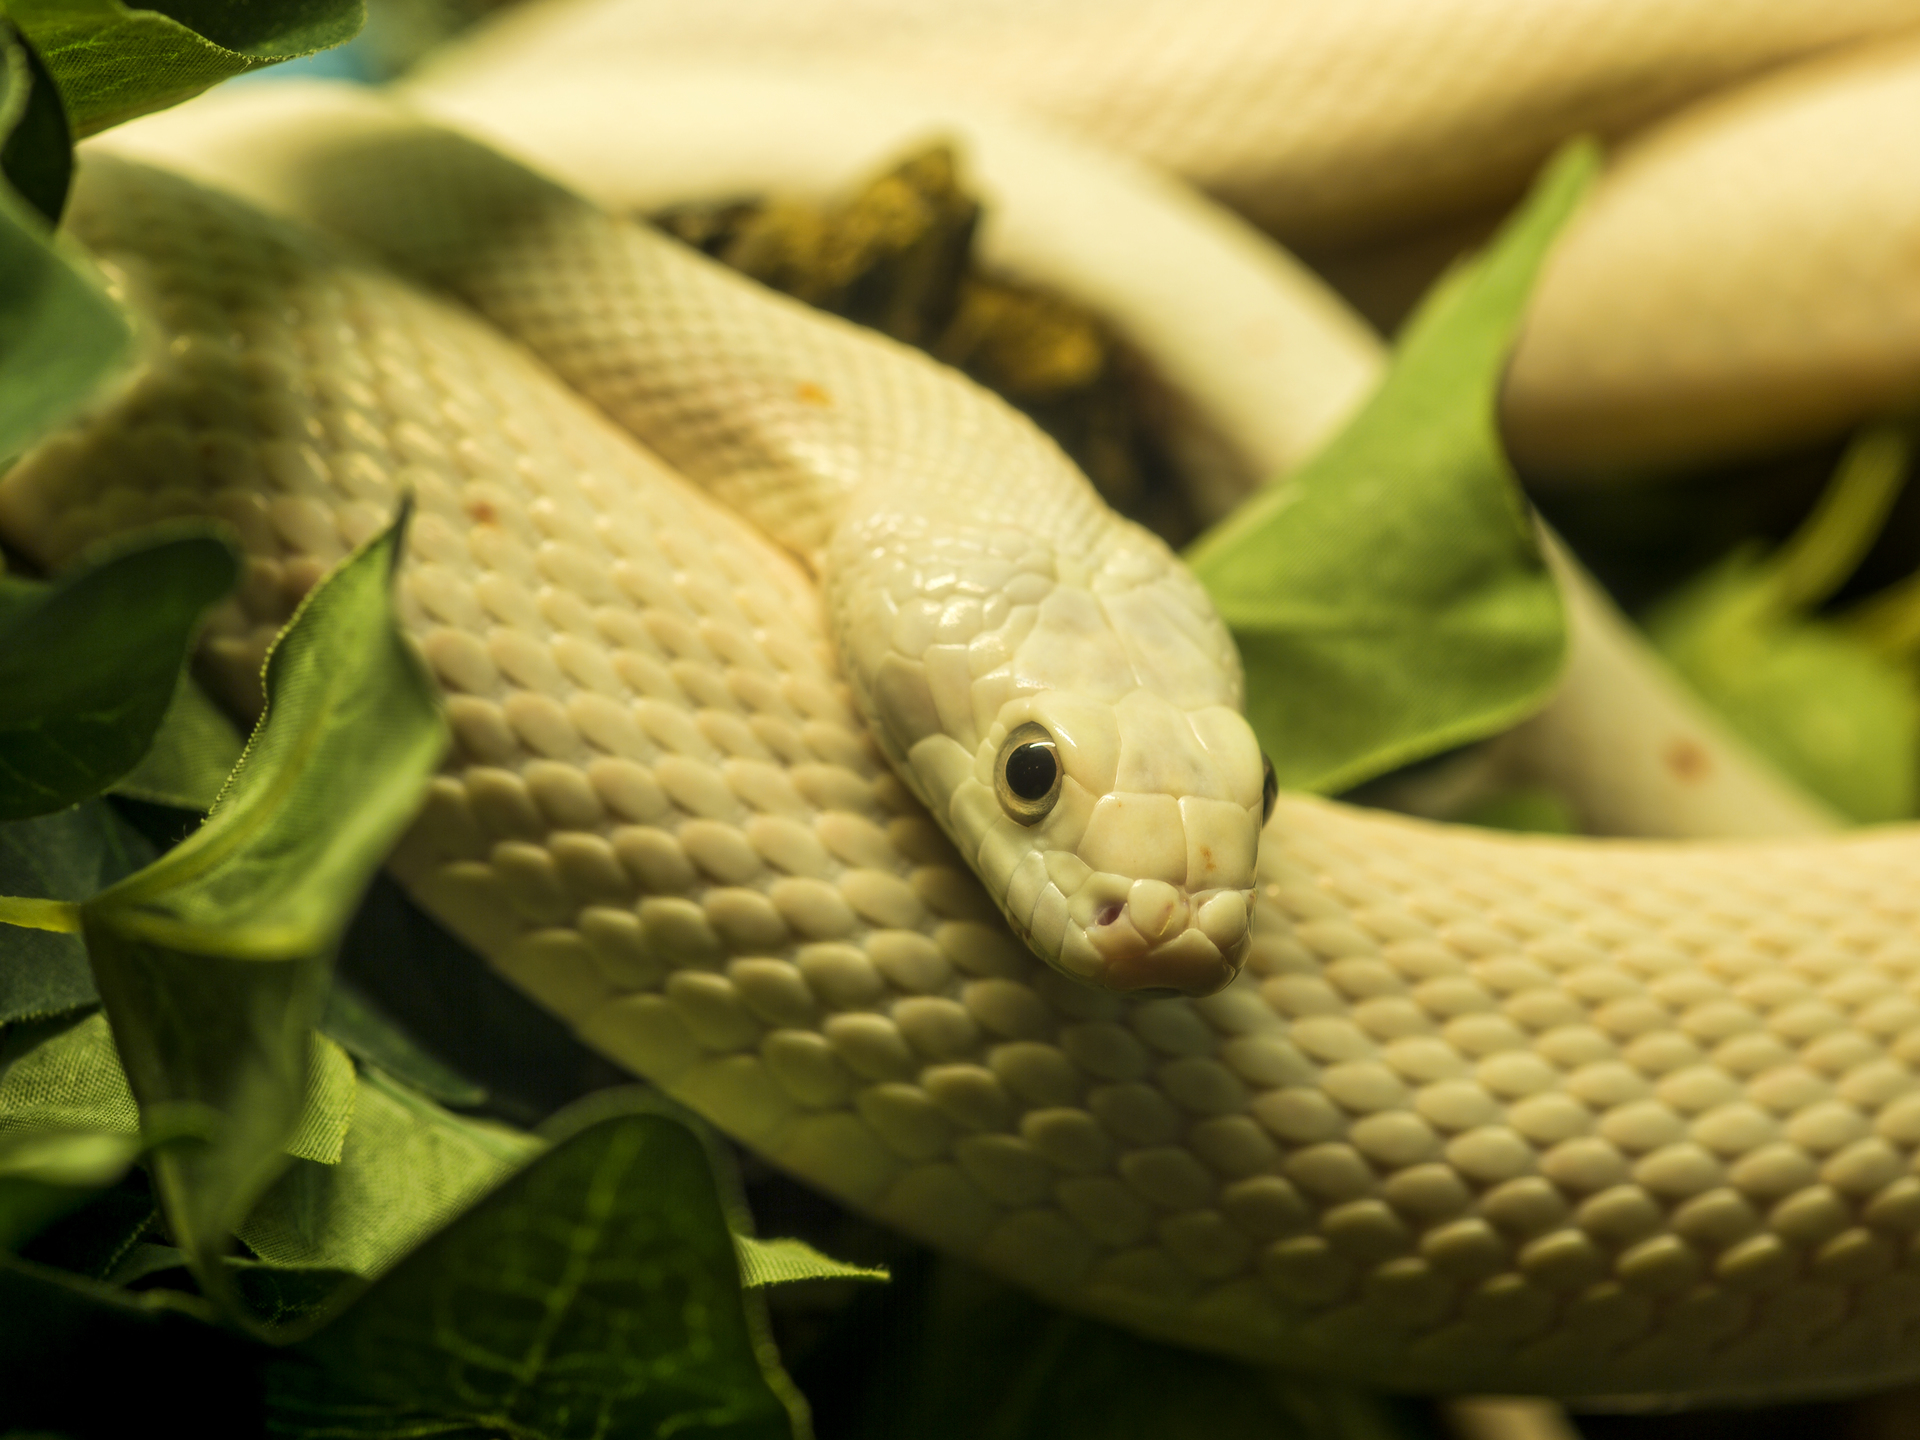 Beige-yellow snake